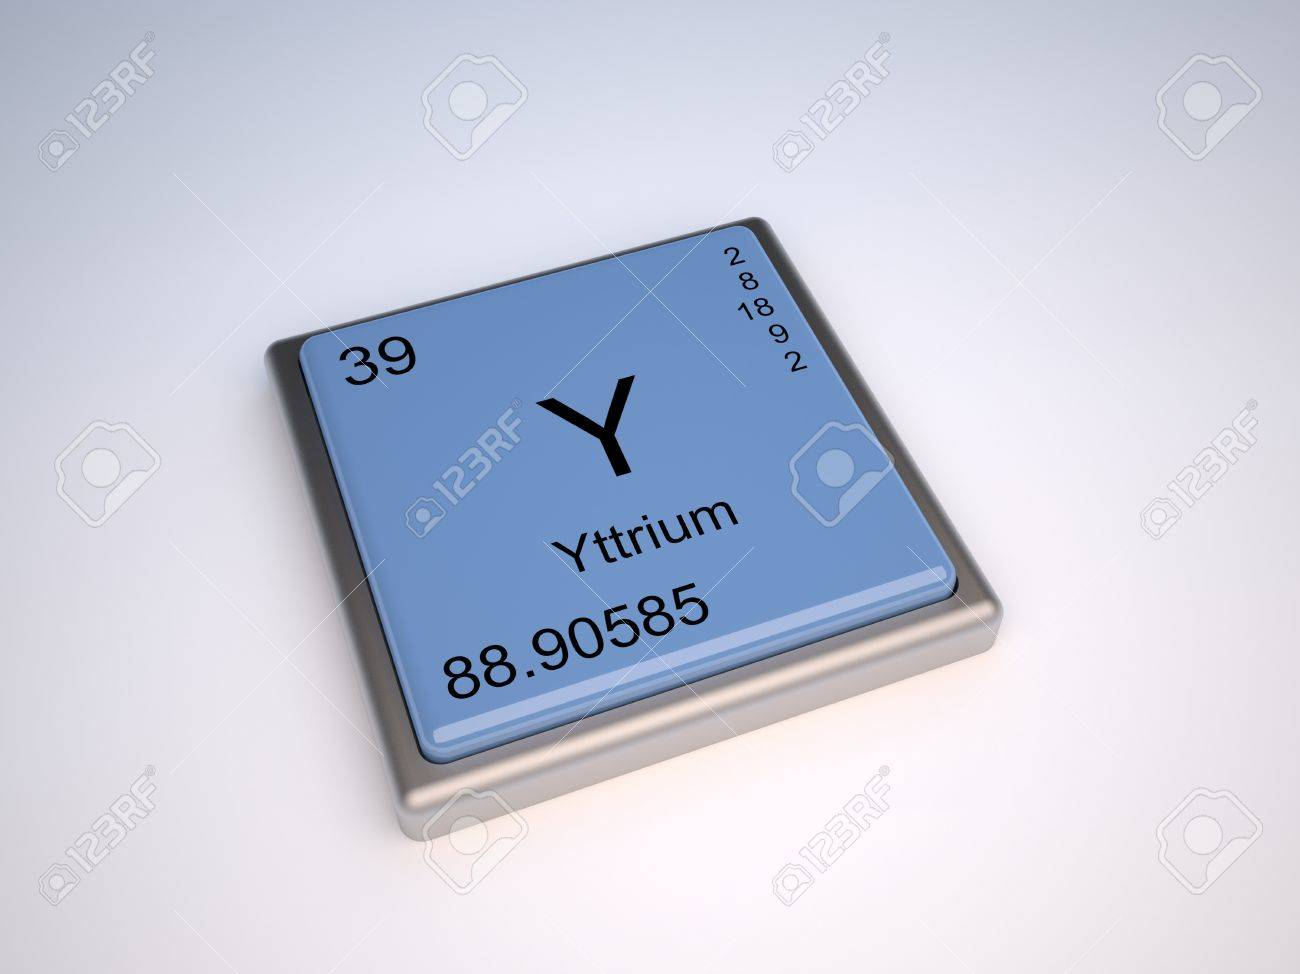 Yttrium chemical element of the periodic table with symbol y stock stock photo yttrium chemical element of the periodic table with symbol y urtaz Image collections